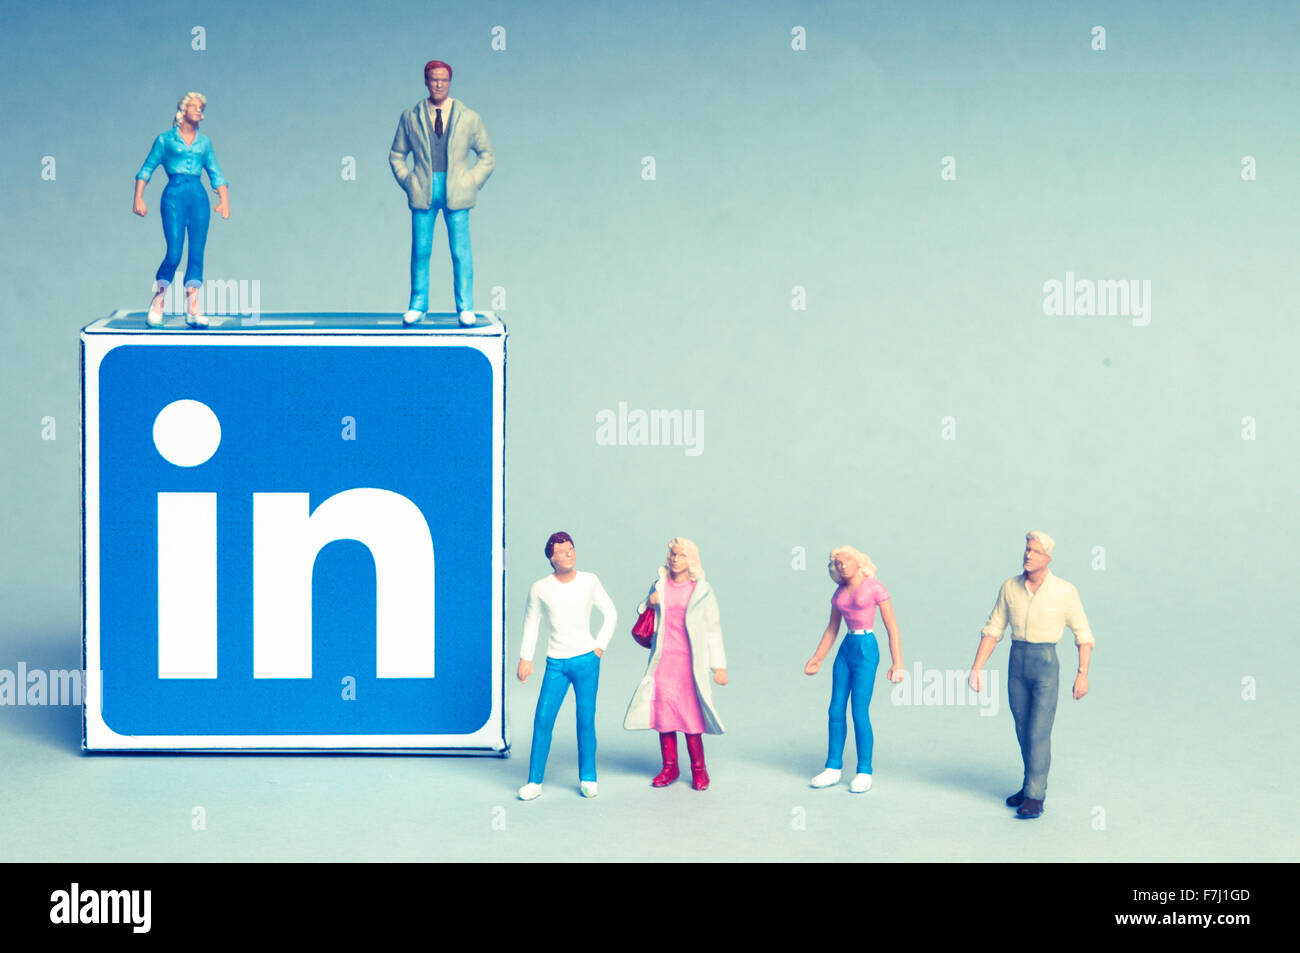 Linkedin logo and people figurines, social media, social relationships and social interactions concept - Stock Image